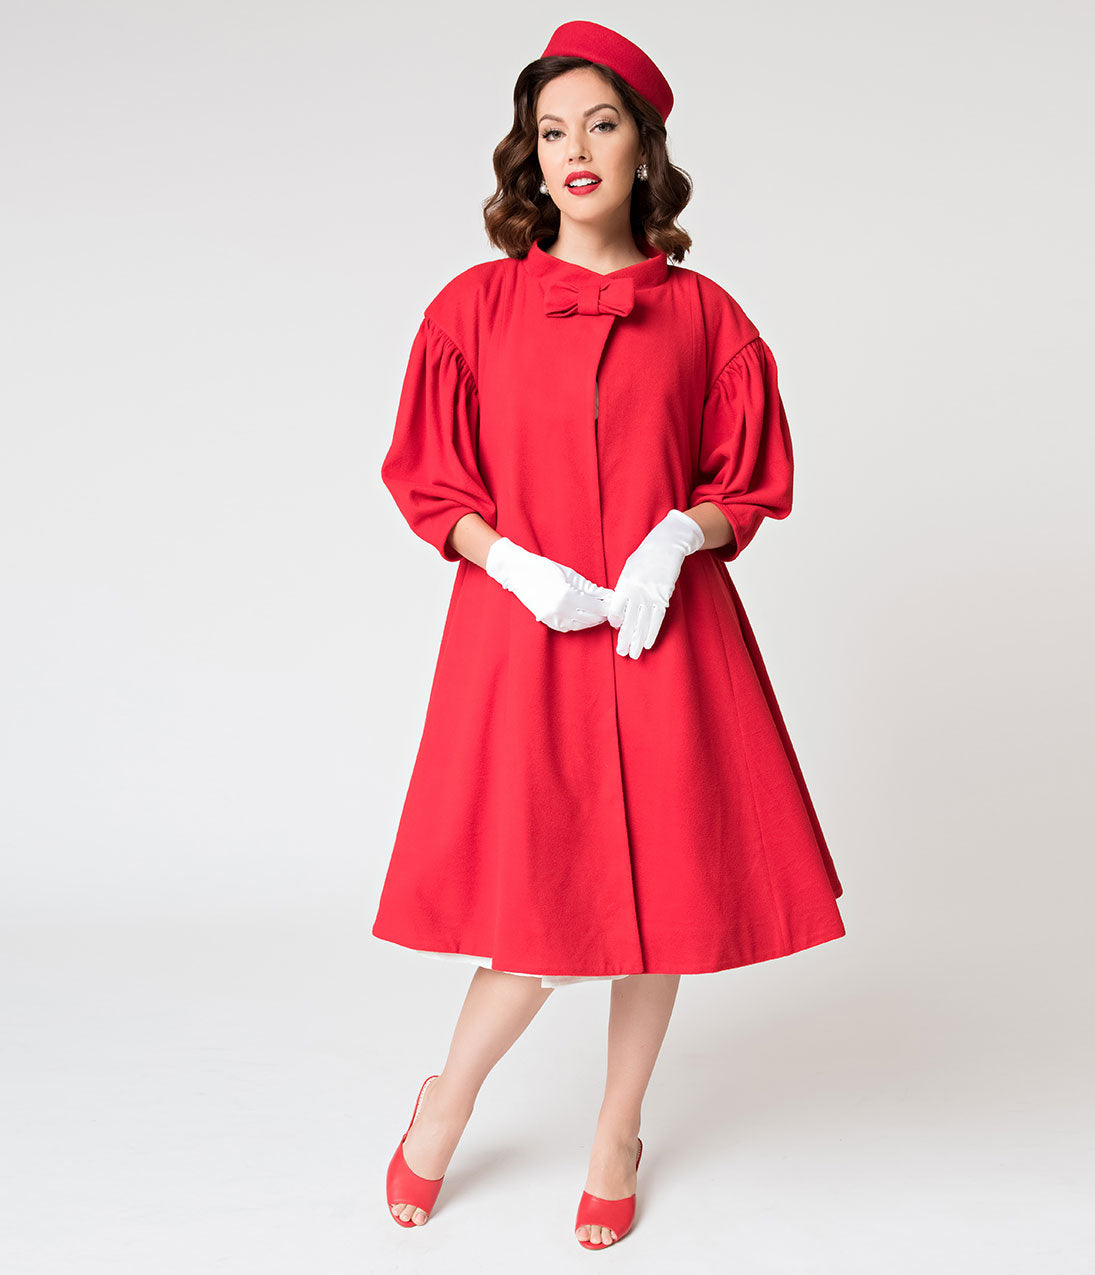 Dress Like the Marvelous Mrs. Maisel 1960S Style Red Flare Swing Coat $101.00 AT vintagedancer.com